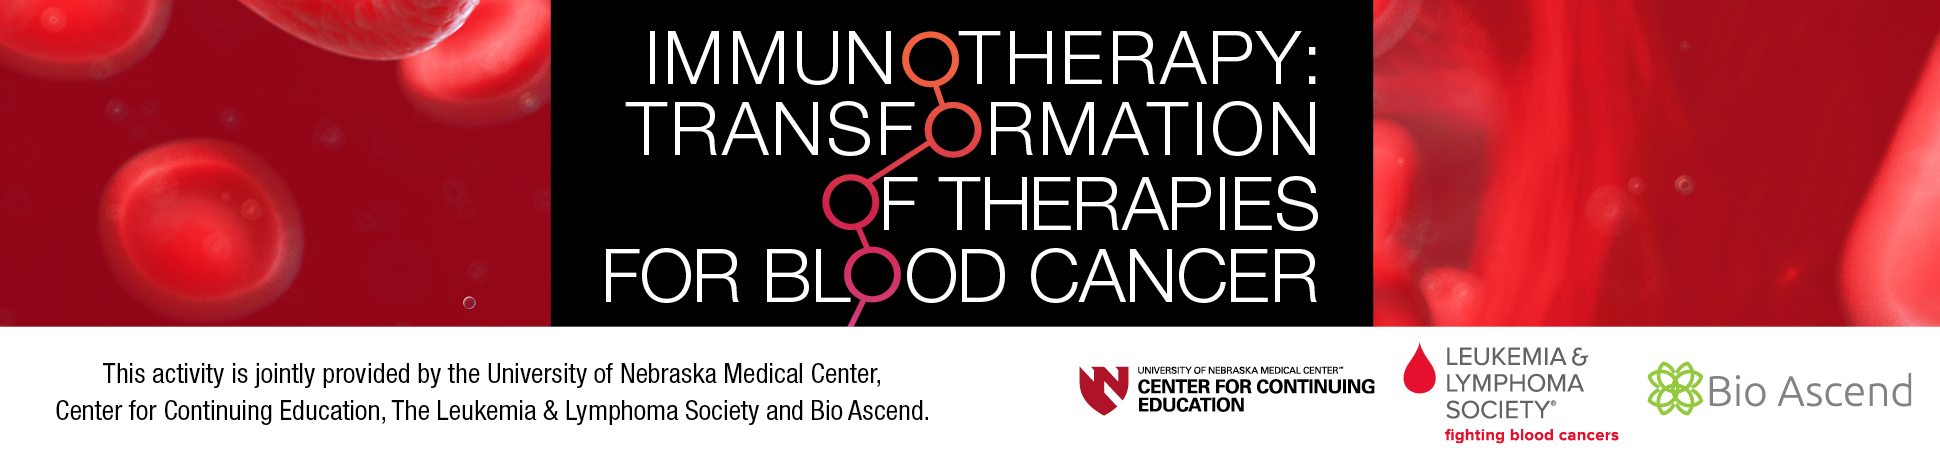 Immunotherapy: Transformation of Therapies for Blood Cancer